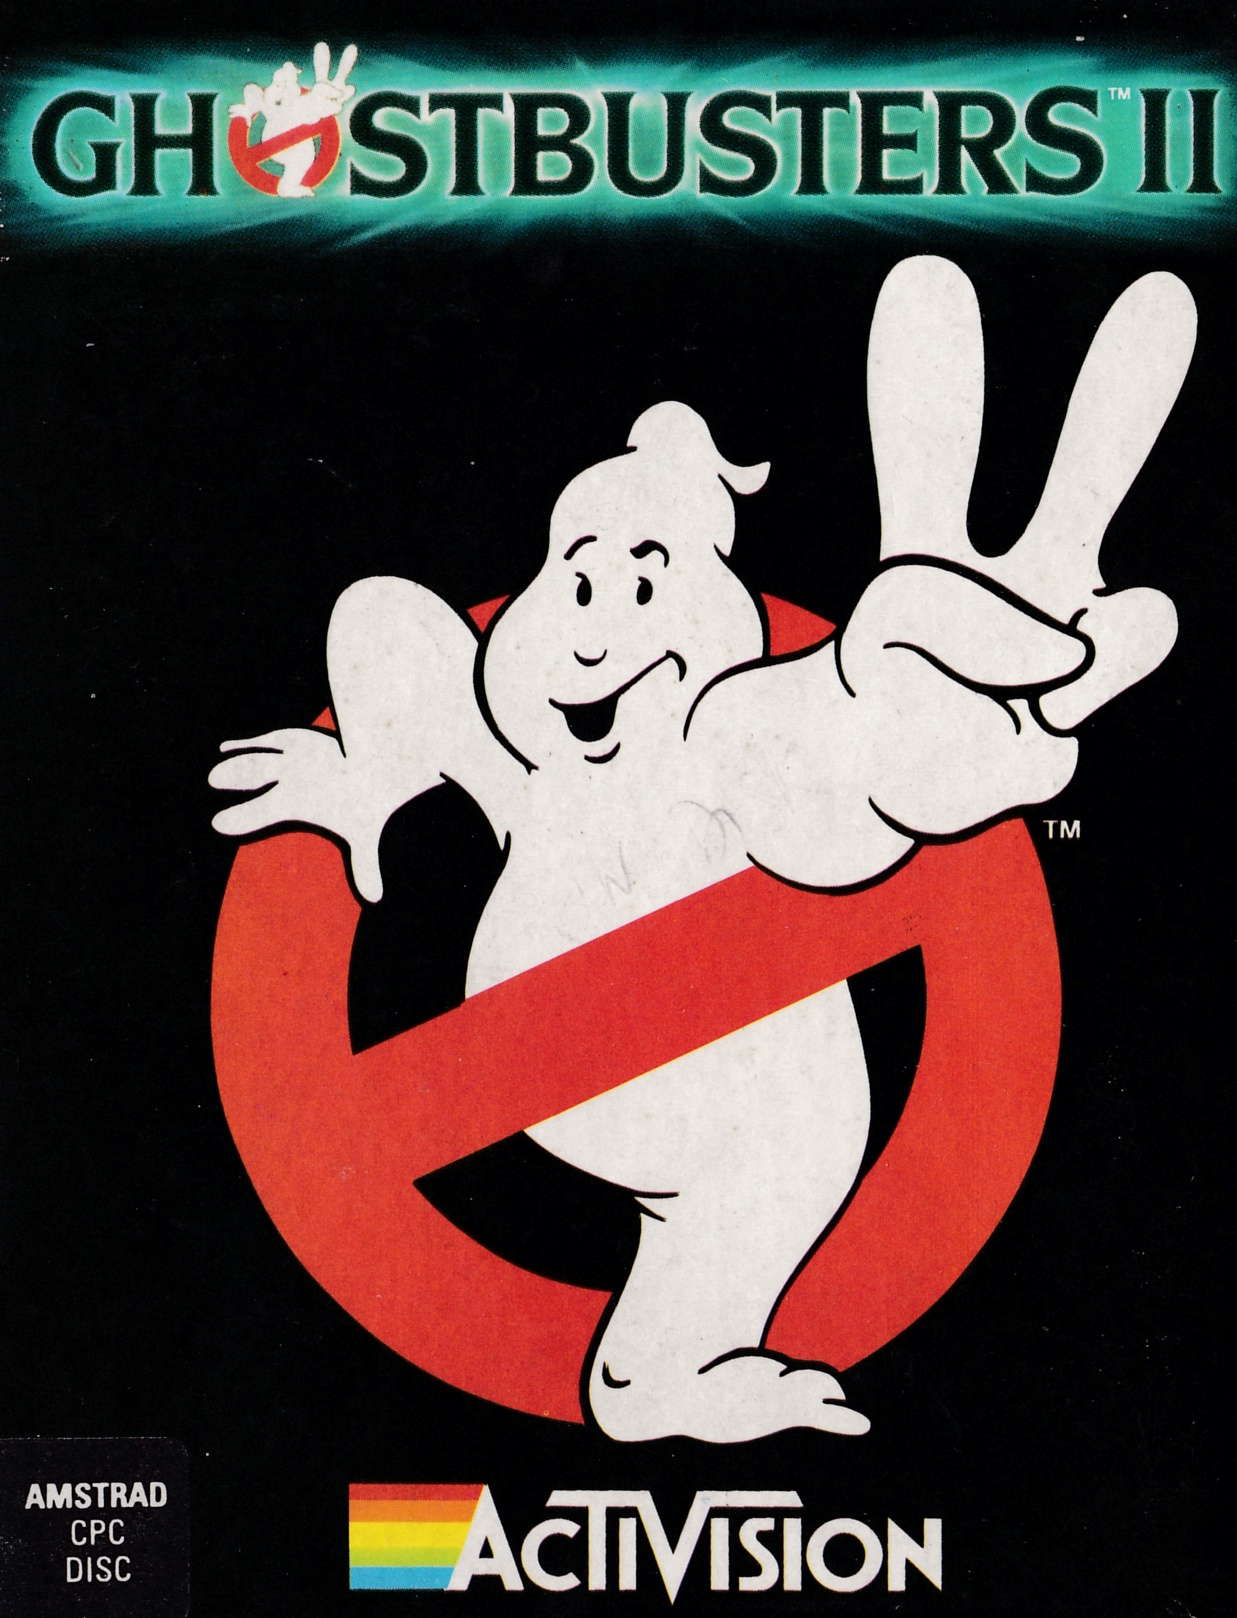 screenshot of the Amstrad CPC game Ghostbusters II by GameBase CPC